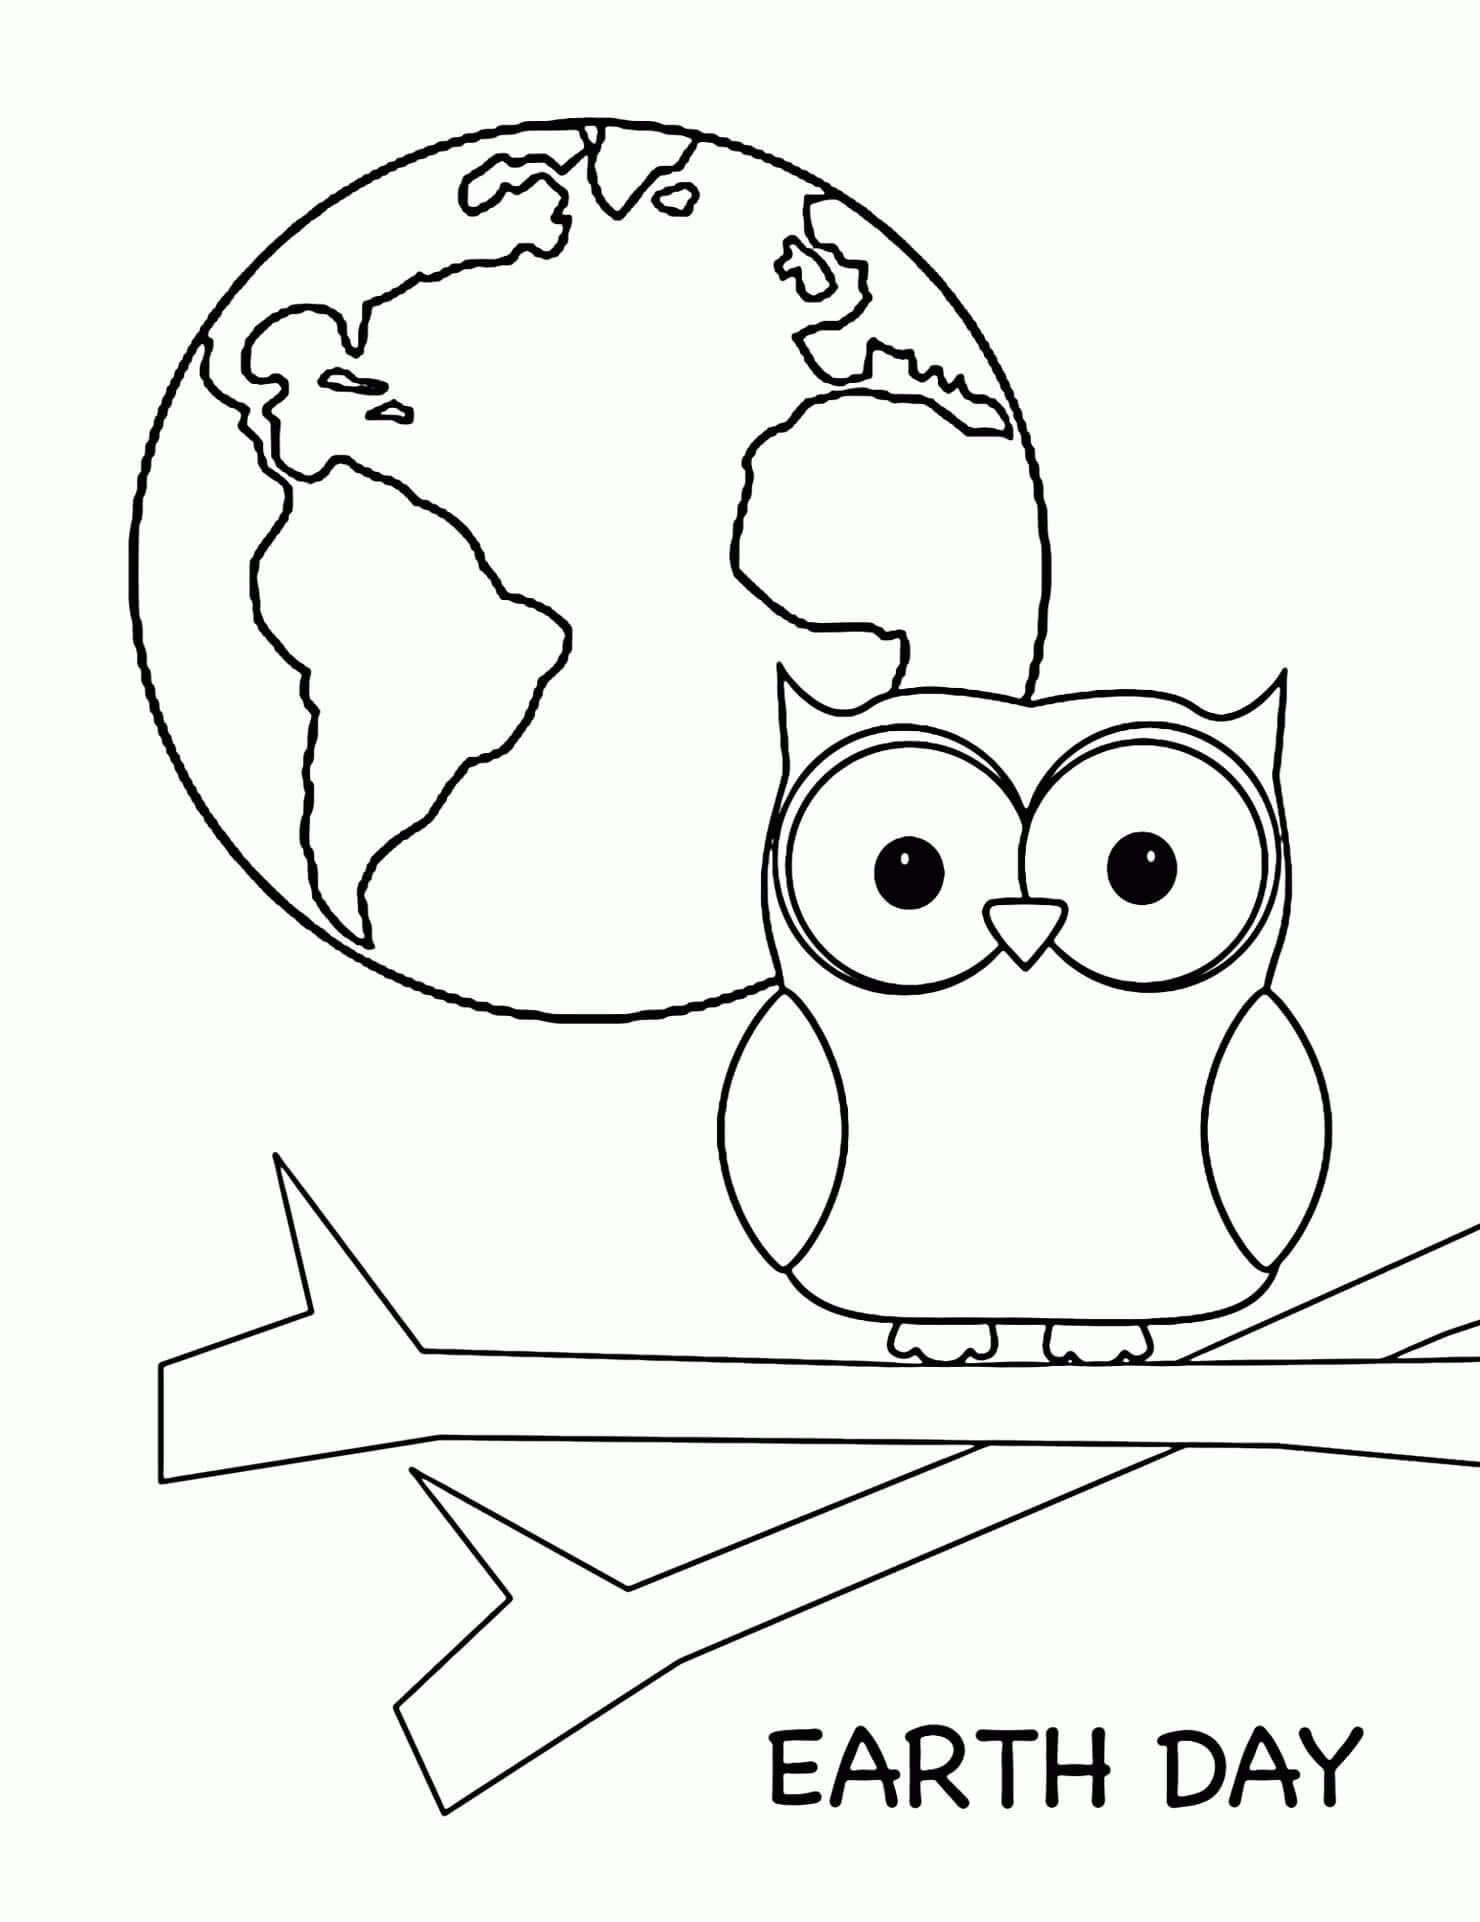 21 Printable Earth Day Coloring